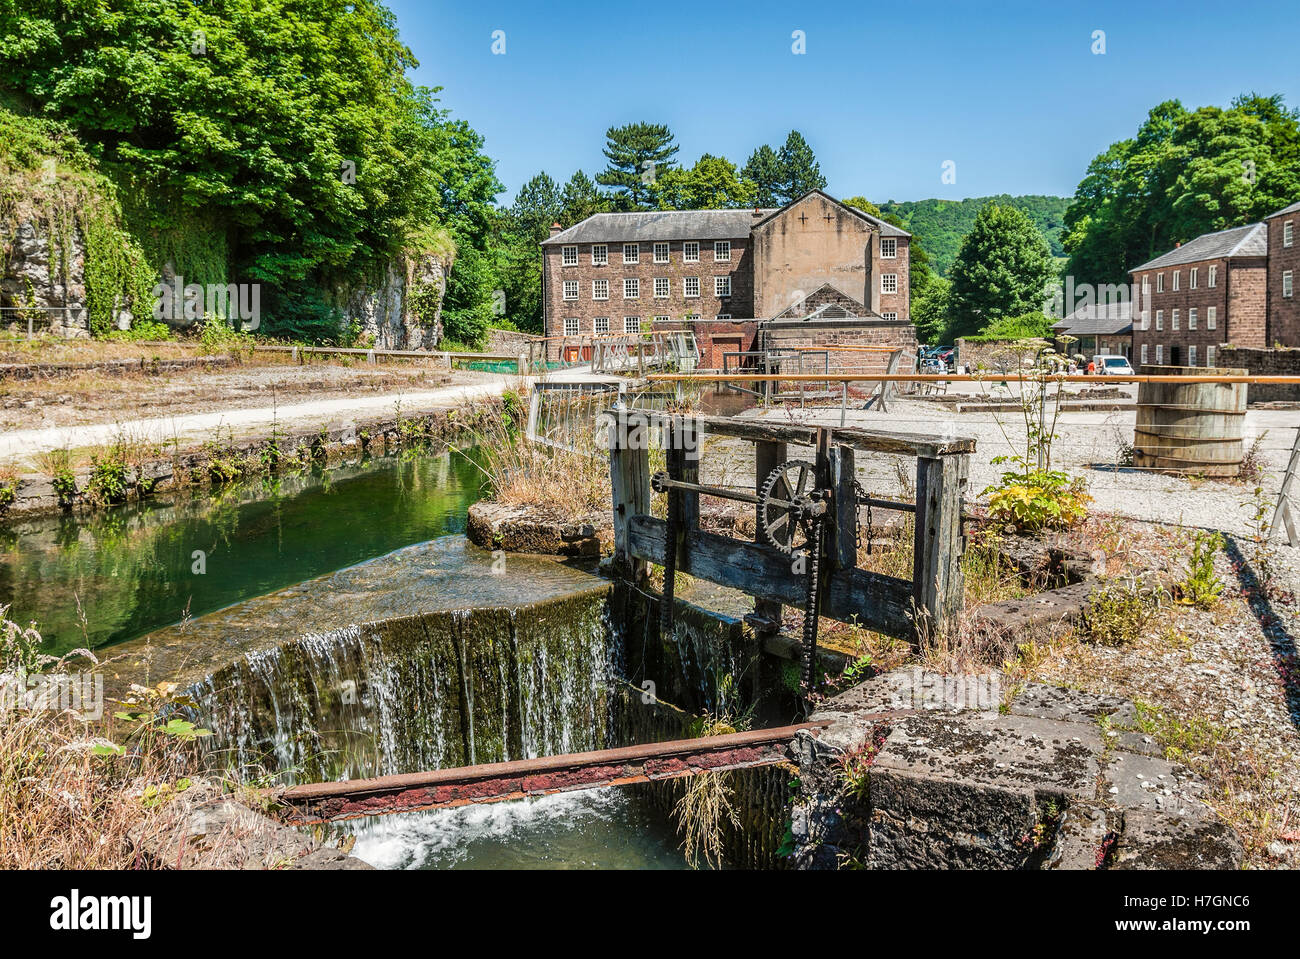 Cromford Mill was the first water-powered cotton spinning mill developed by Richard Arkwright in 1771 in Cromford, - Stock Image